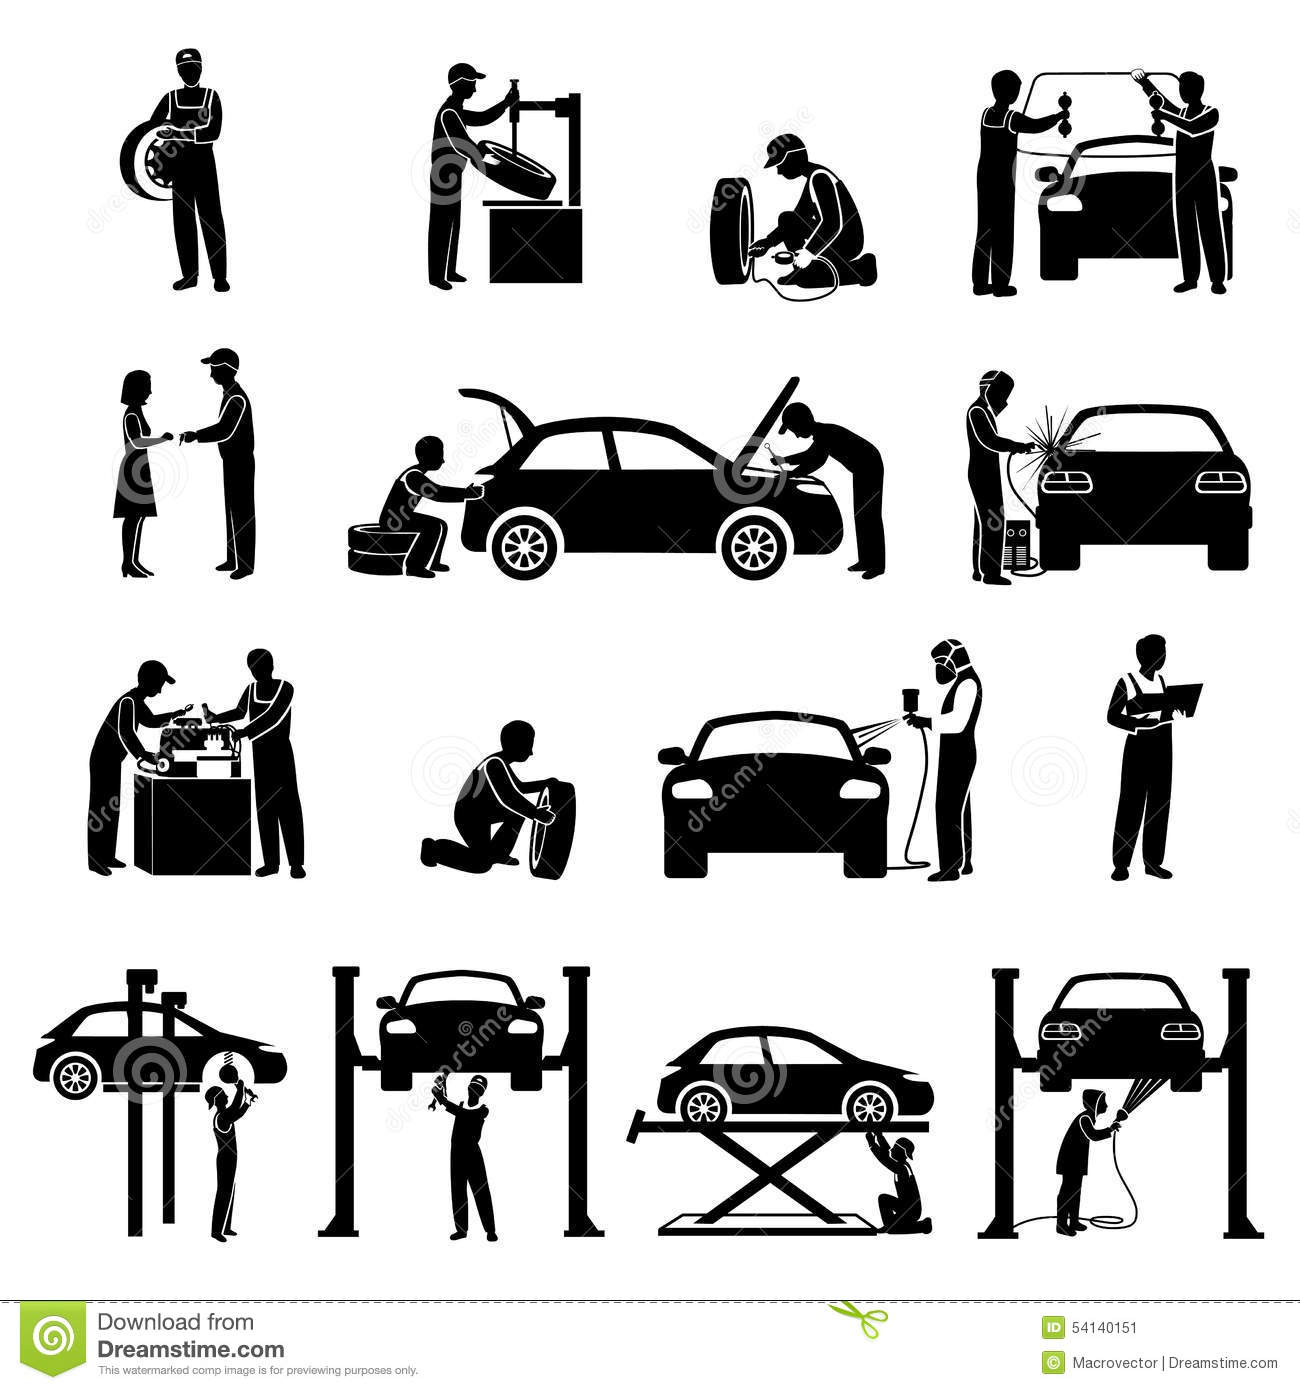 Stock Illustration Mechanic Icons Black Auto Service Set Cars Silhouettes Isolated Vector Illustration Image54140151 on car with flat tire